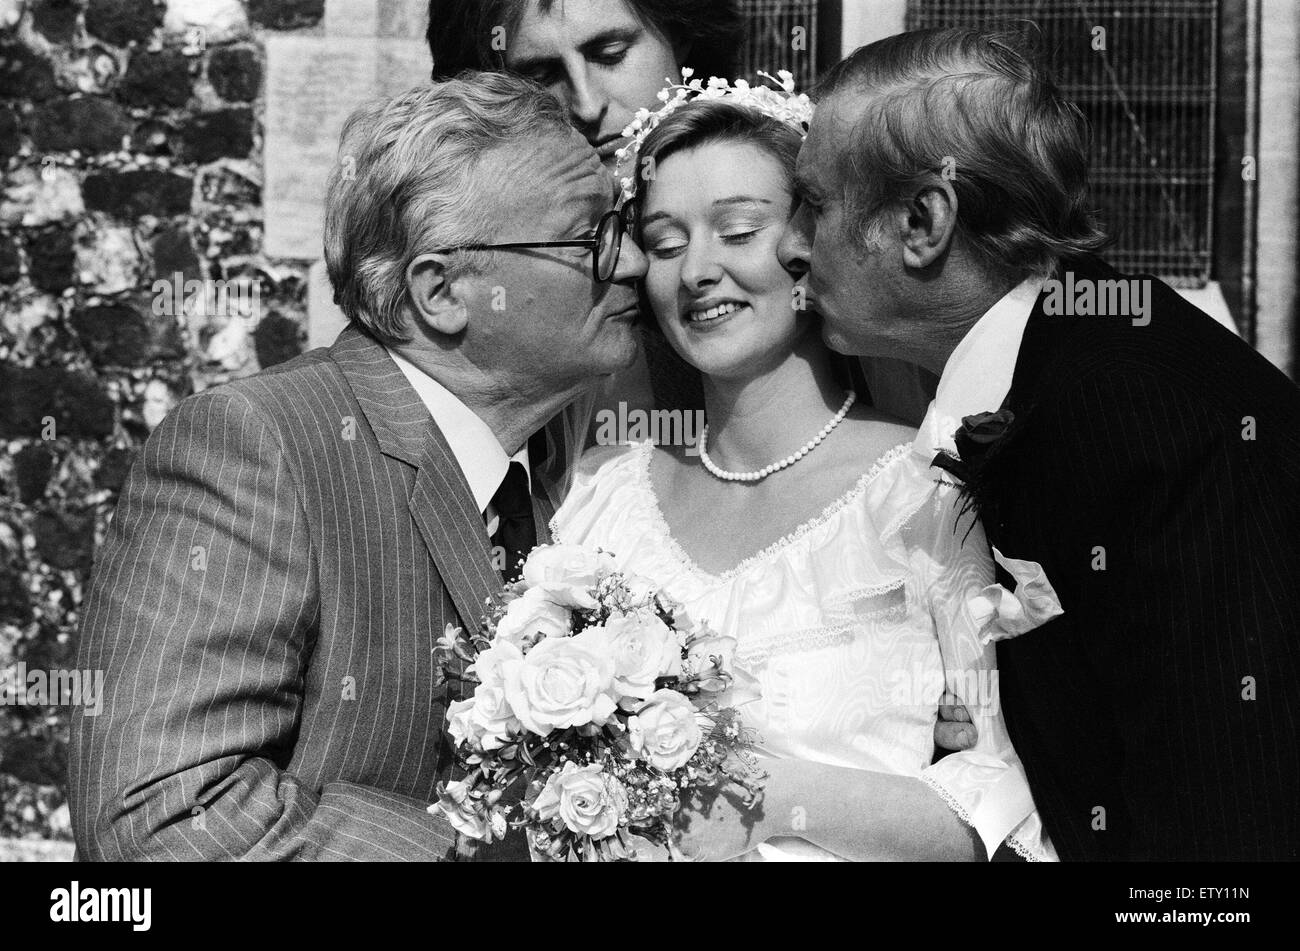 the wedding of spike milligans daughter sile to willie